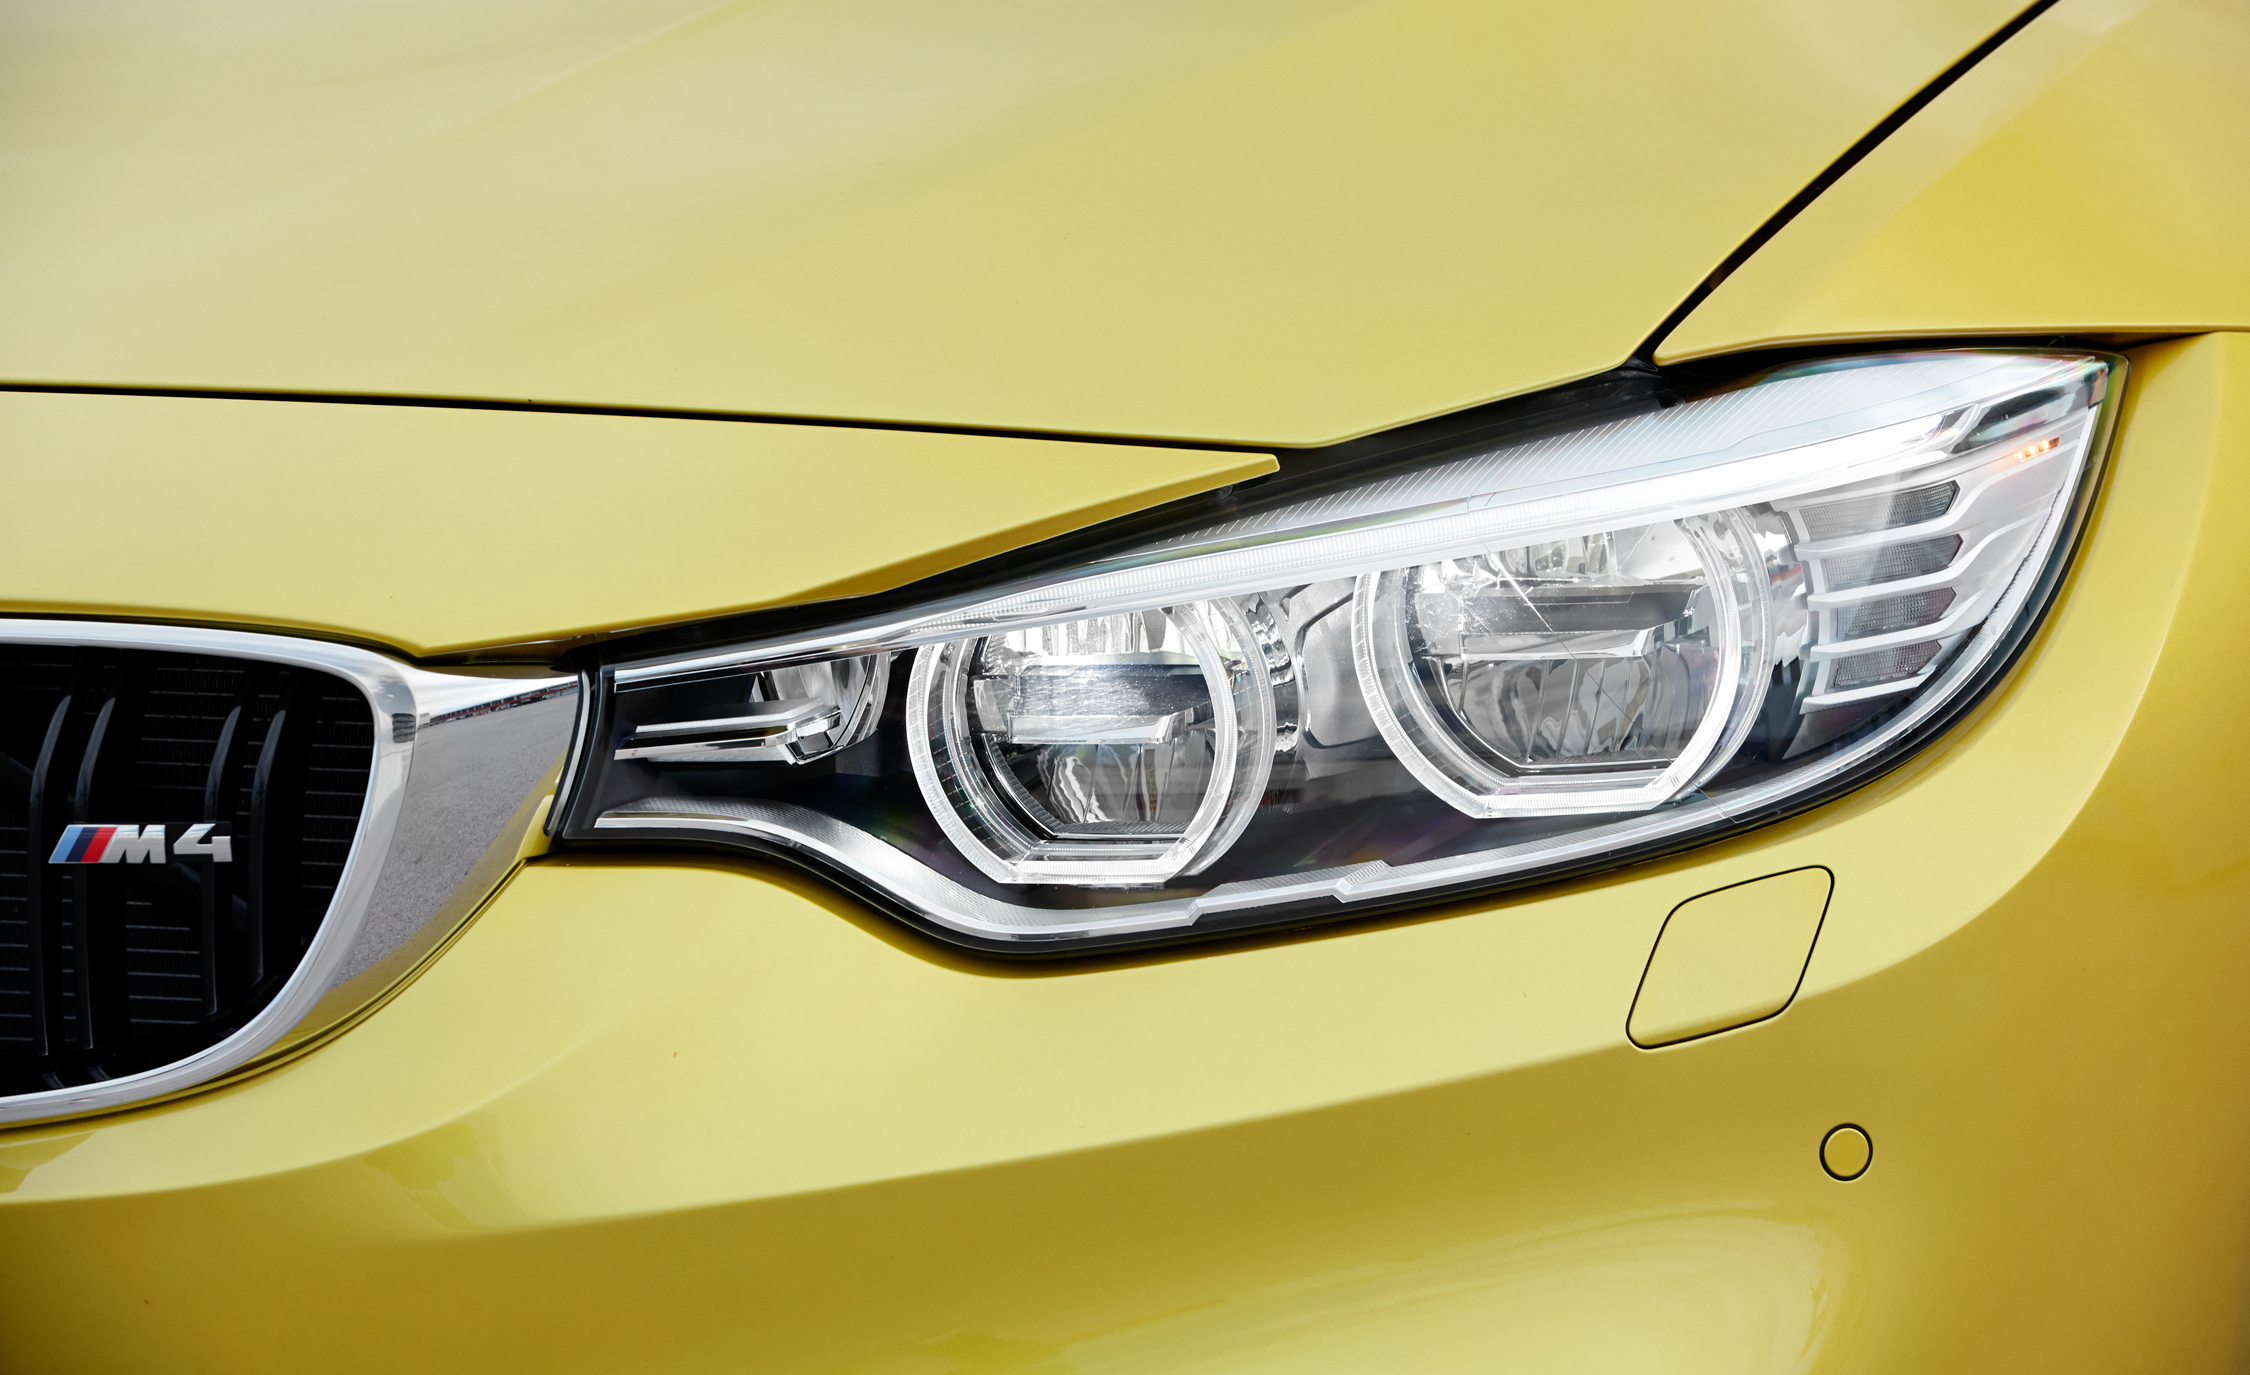 2015 BMW M4 Coupe Badge And Headlight (Photo 16 of 41)